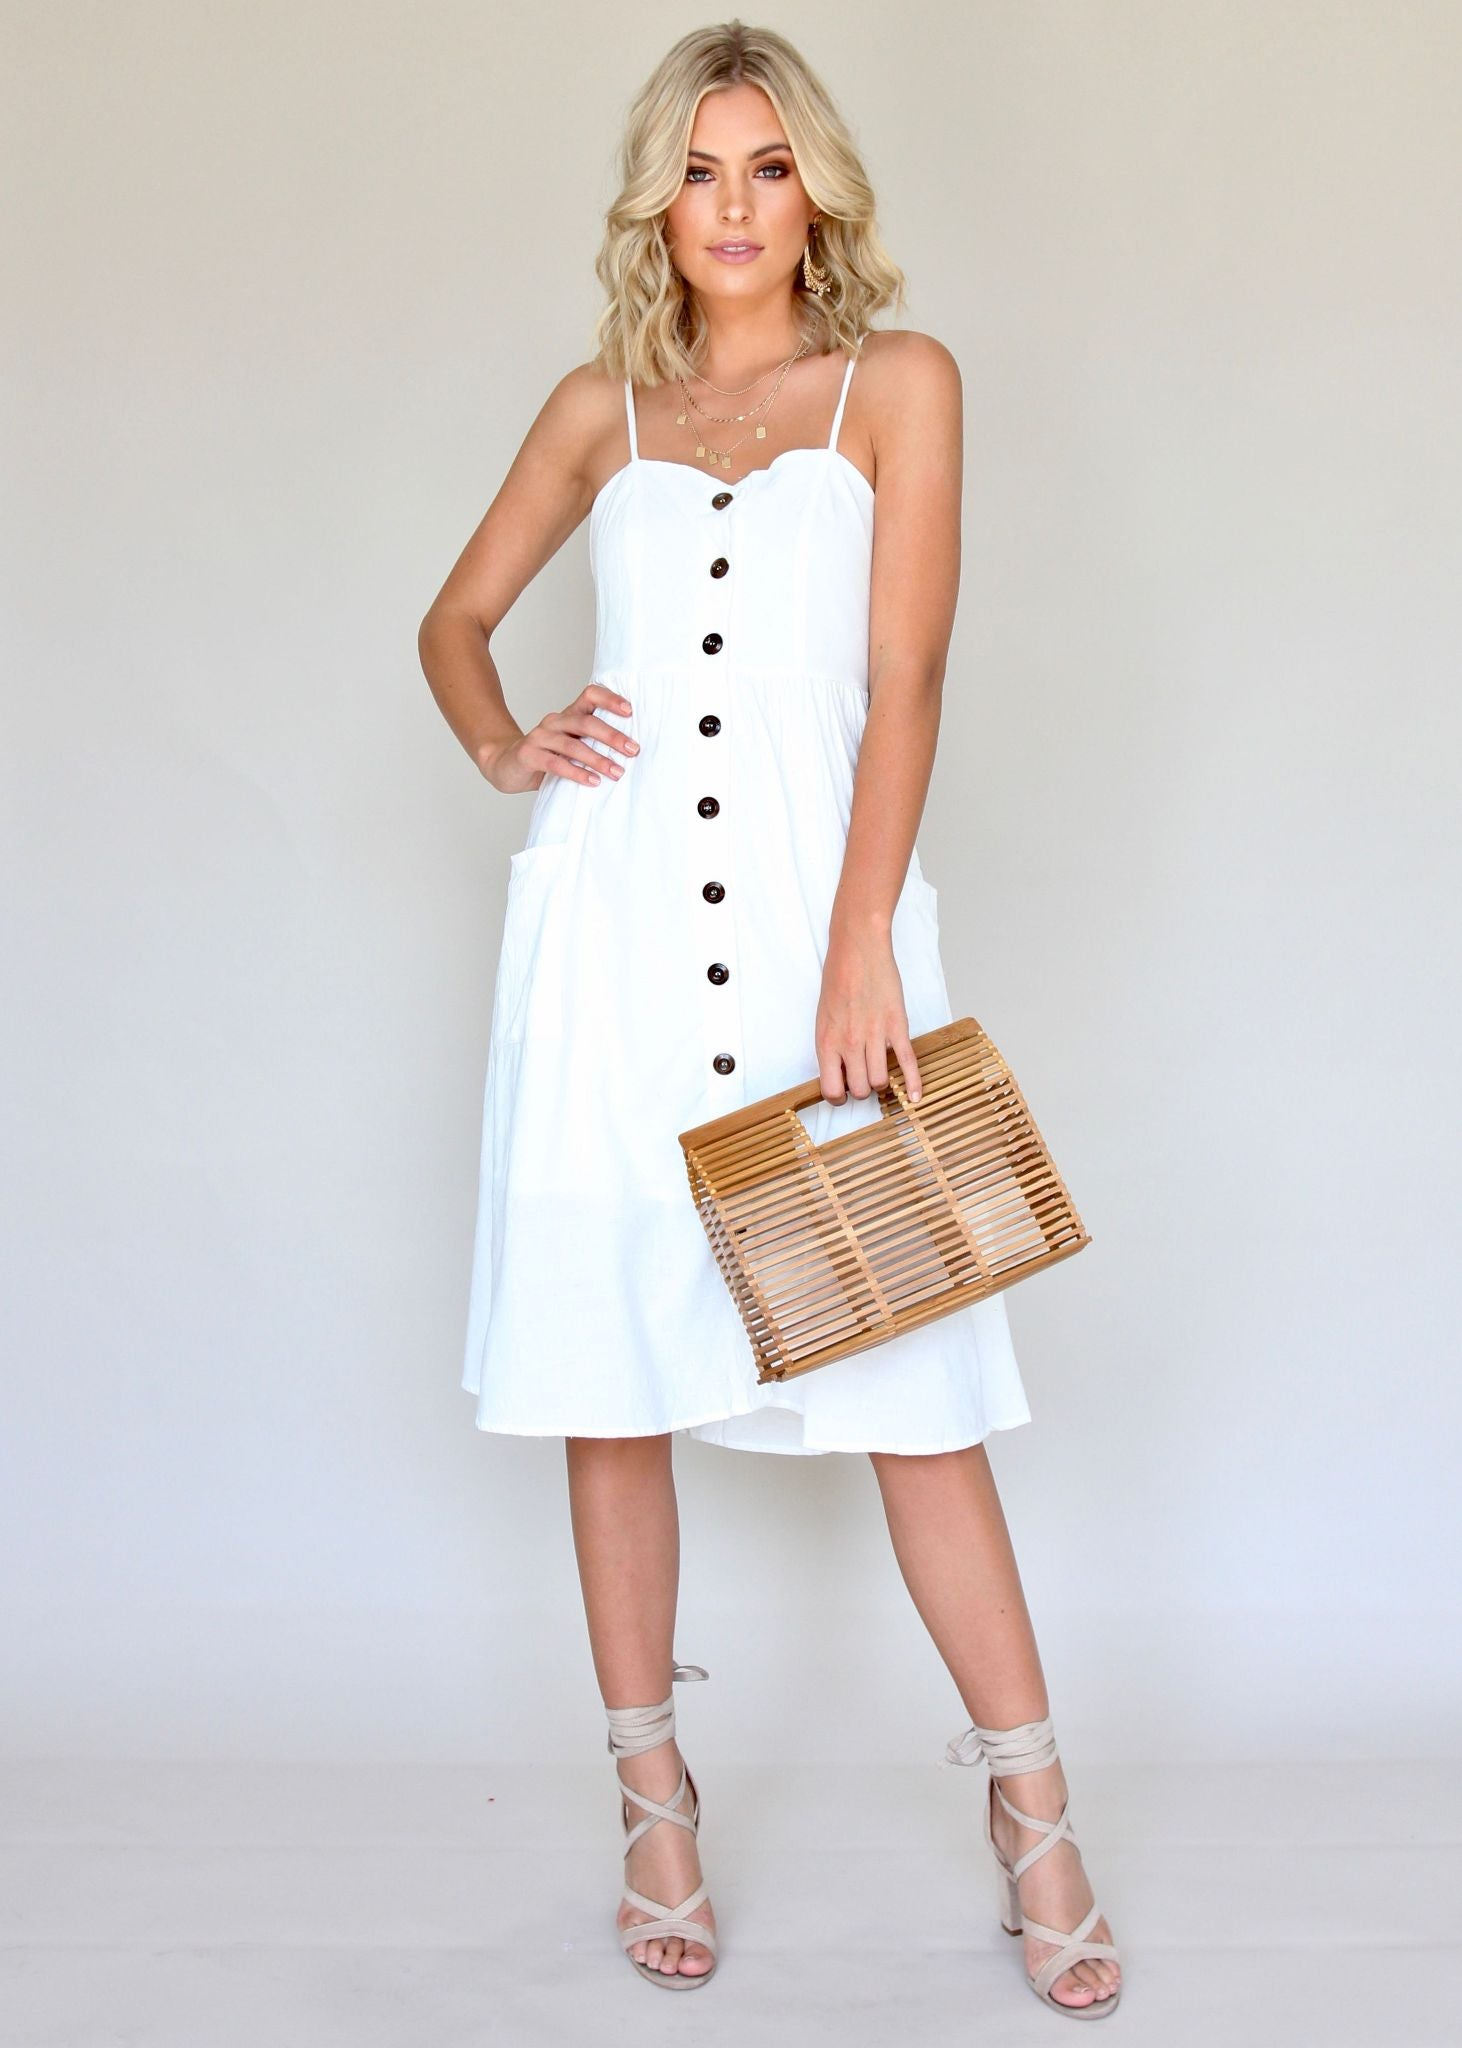 Utopia Midi Dress - White